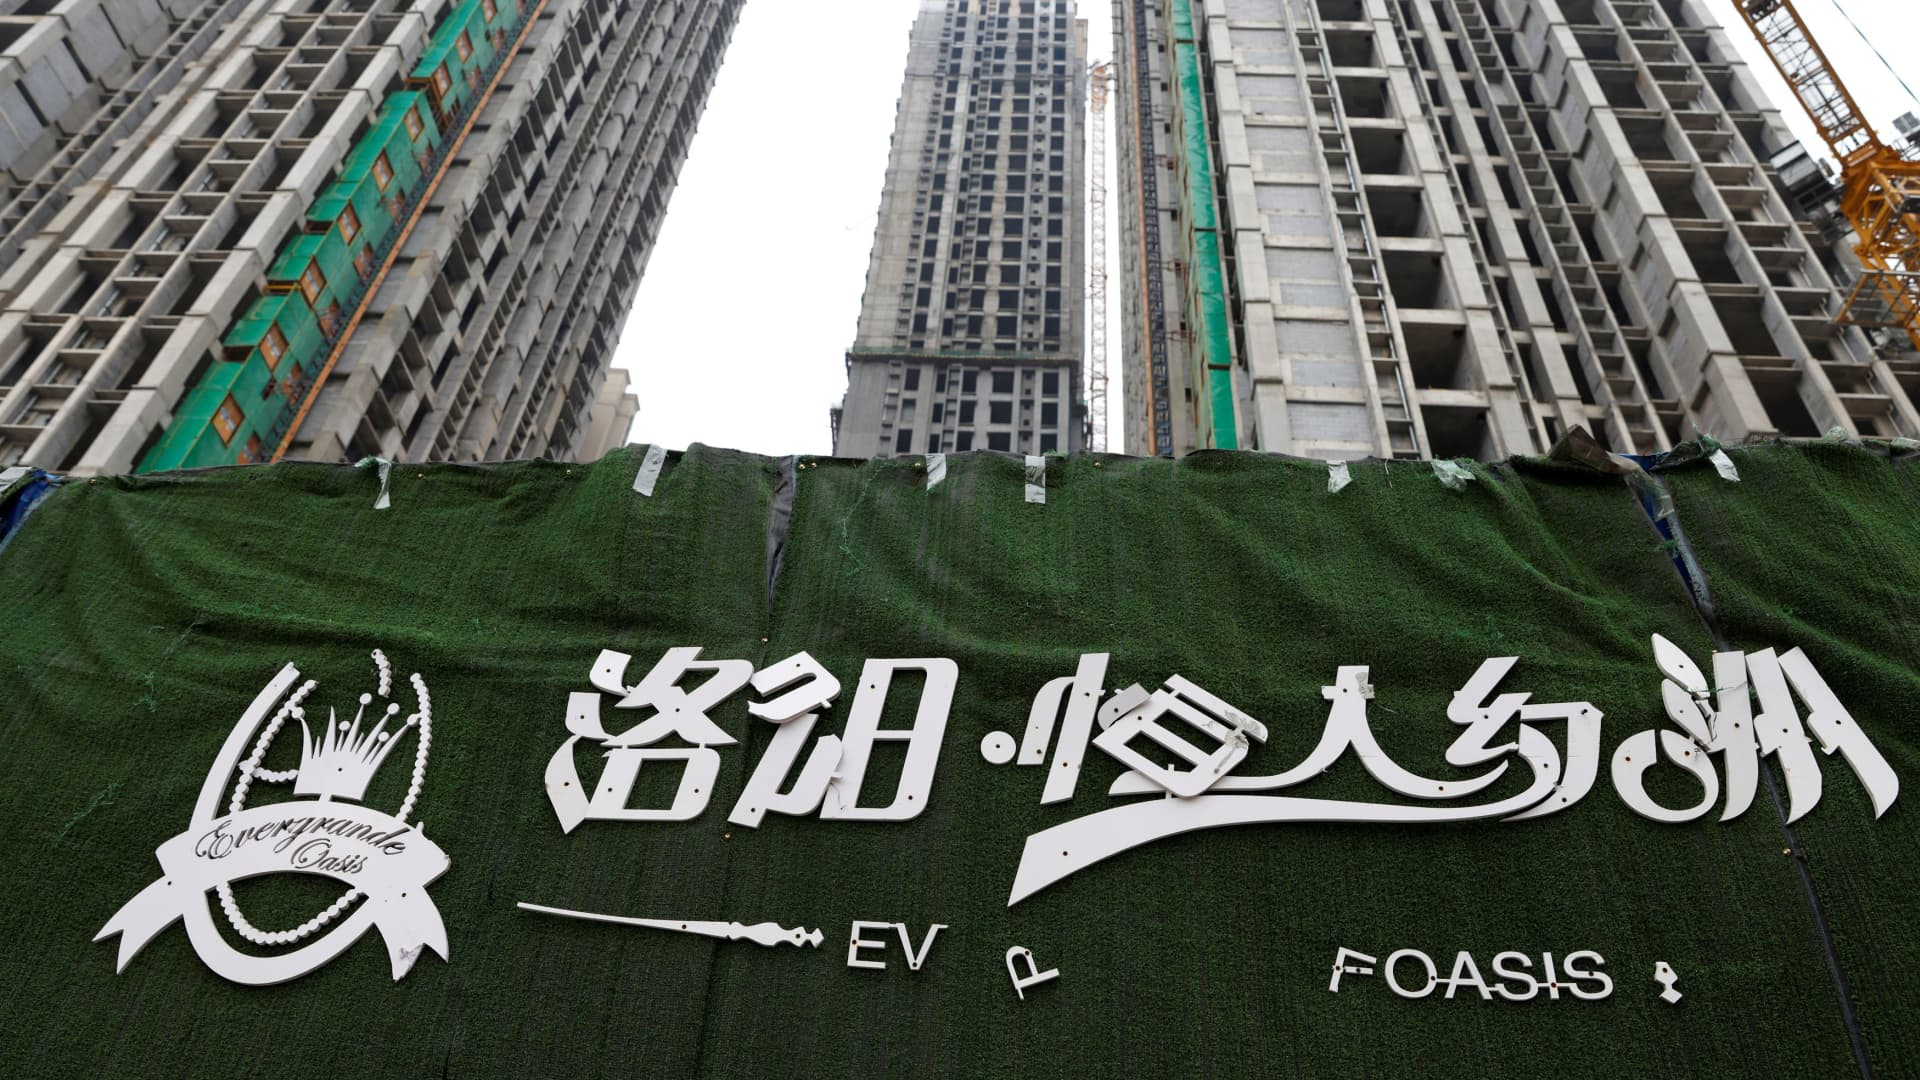 A peeling logo of the Evergrande Oasis, a housing complex developed by Evergrande Group, is pictured outside the construction site where the residential buildings stand unfinished, in Luoyang, China September 16, 2021. Picture taken September 16, 2021.